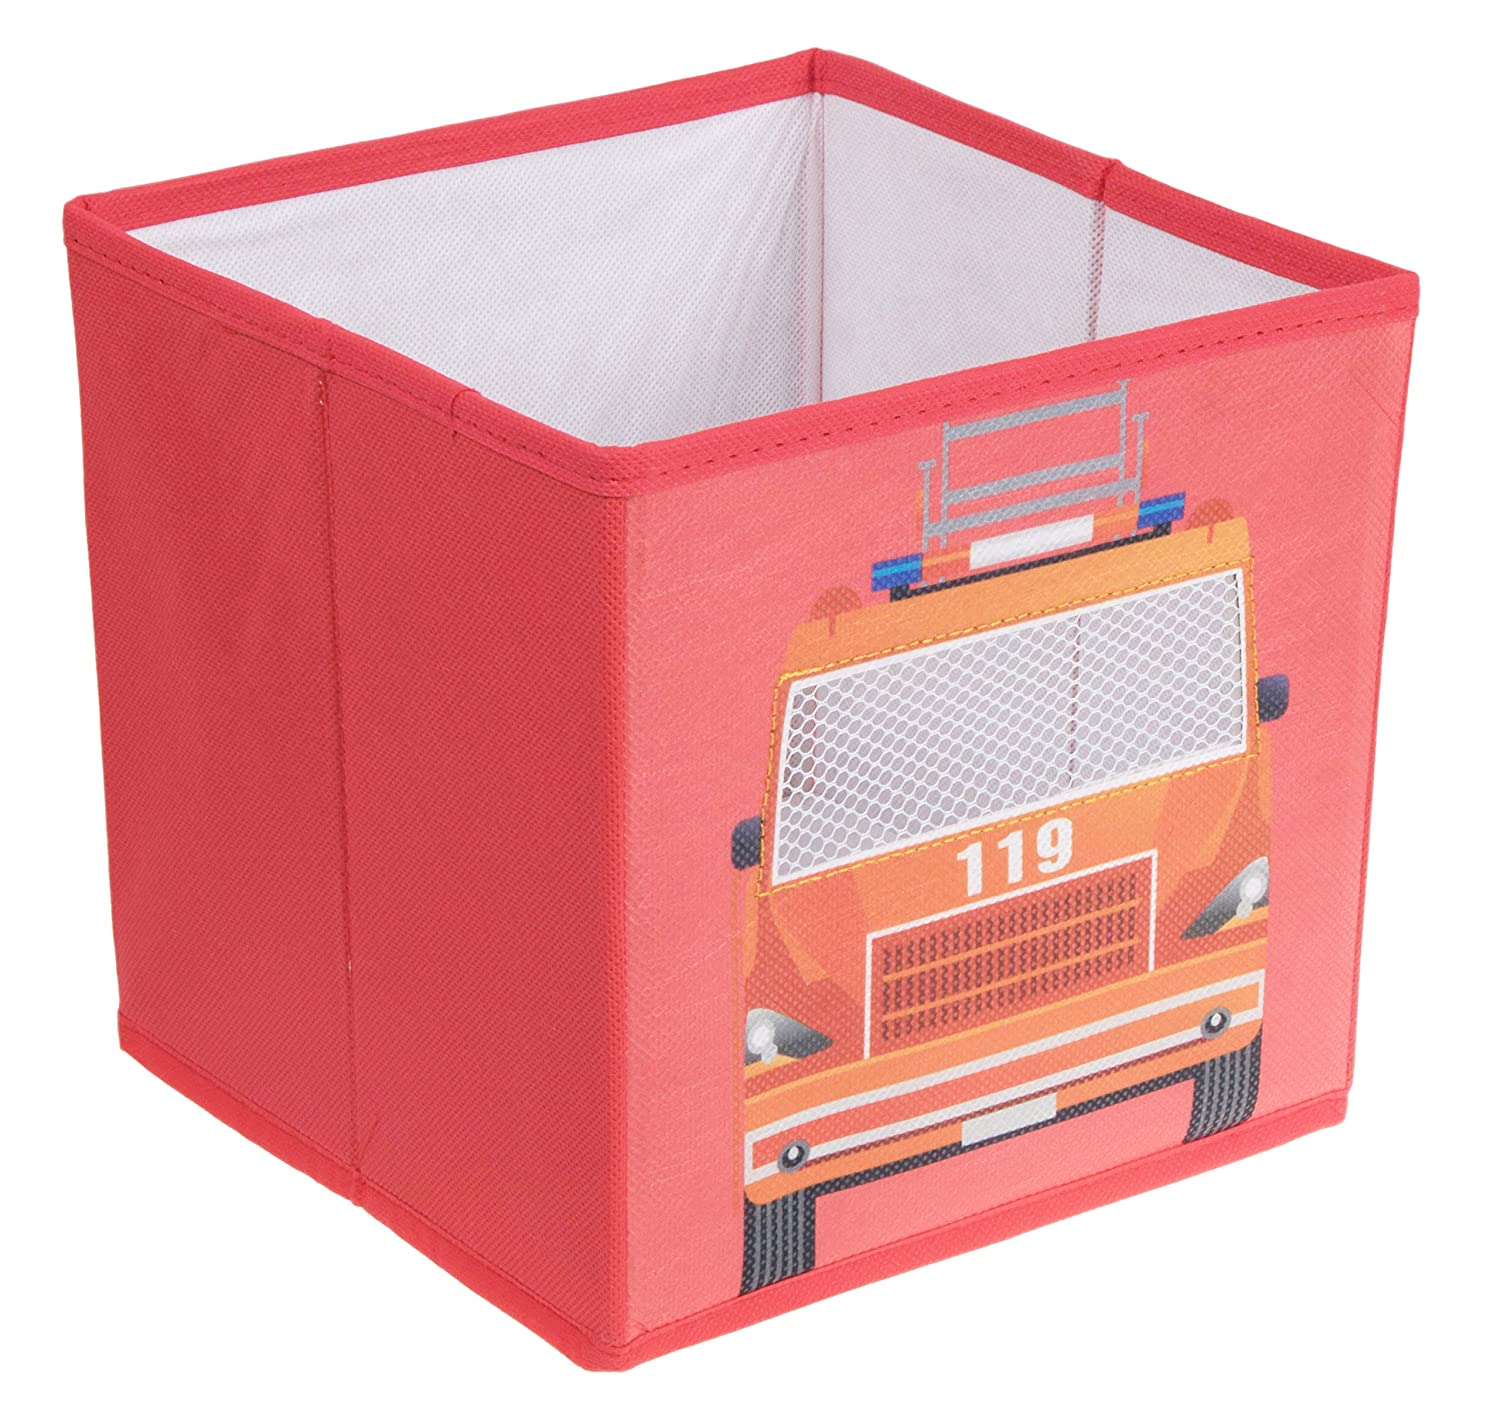 Clever Creations Fire Truck Collapsible Storage Organizer Firetruck Storage Box Folding Storage Ottoman for Your Bedroom | Perfect Size Storage Chest for Books, Shoes & Games